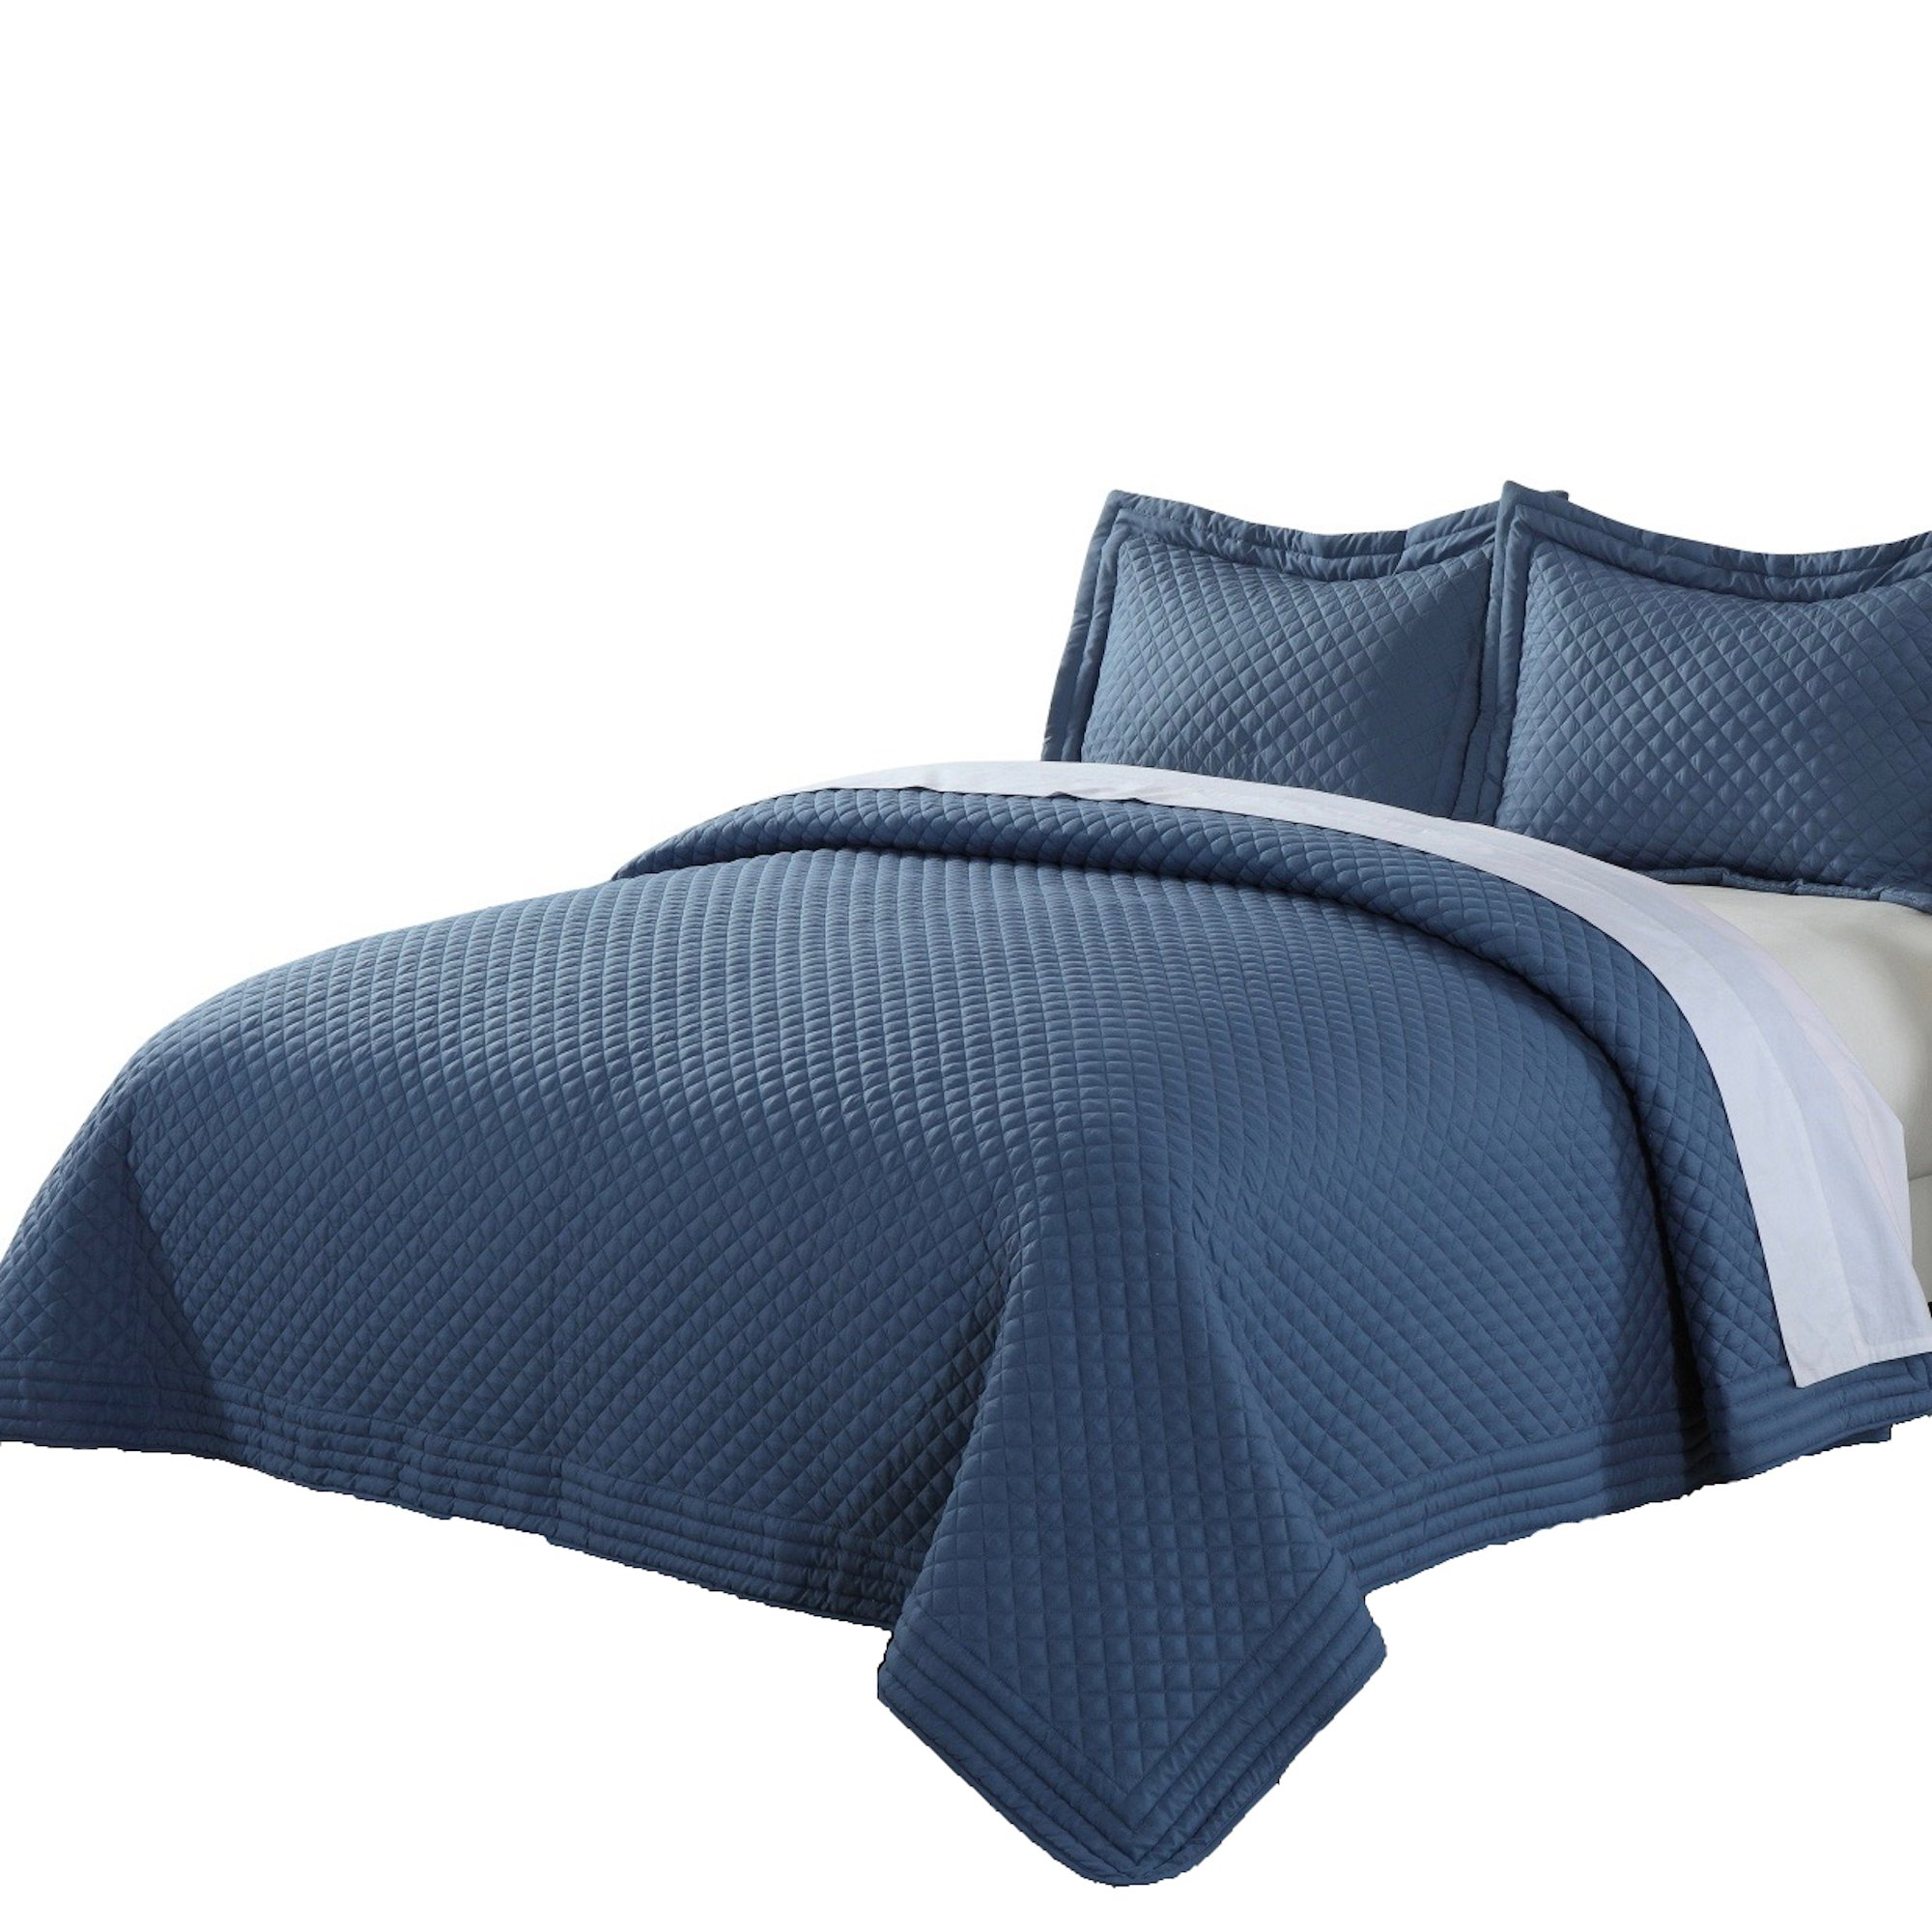 Lotus Home Microfiber Stain and Water Resistant Diamond Quilt, Full/Queen, Smoke Blue